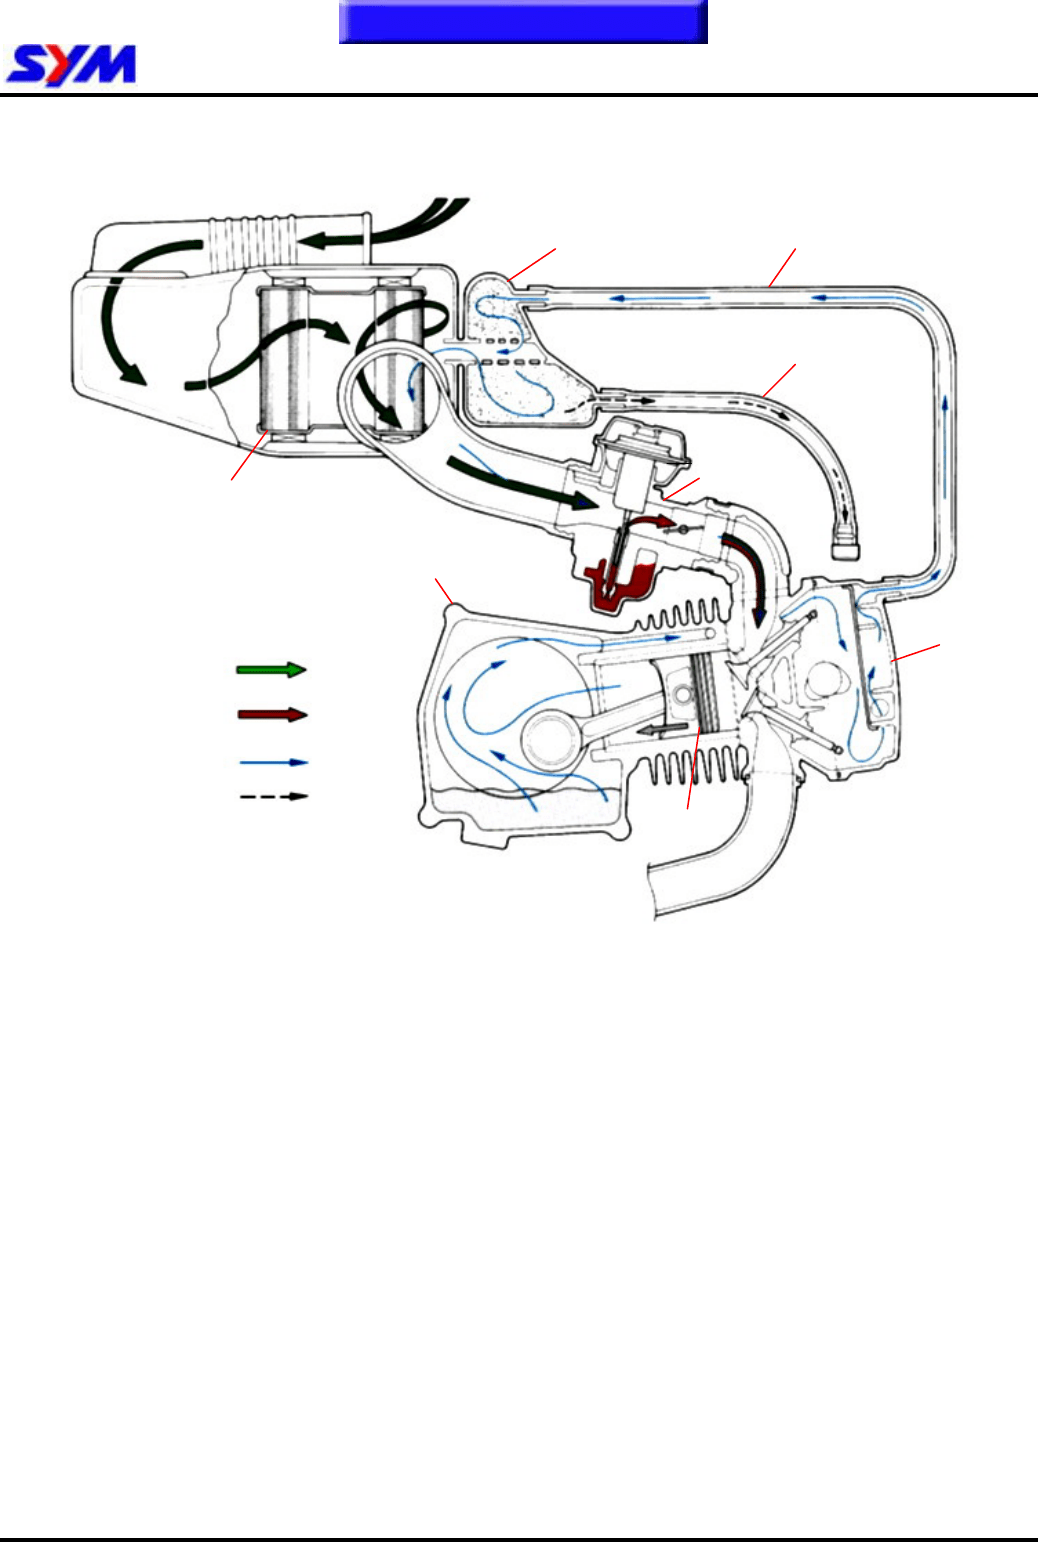 Yamaha Vino 125 Scooter Wiring Diagram. Diagram. Auto